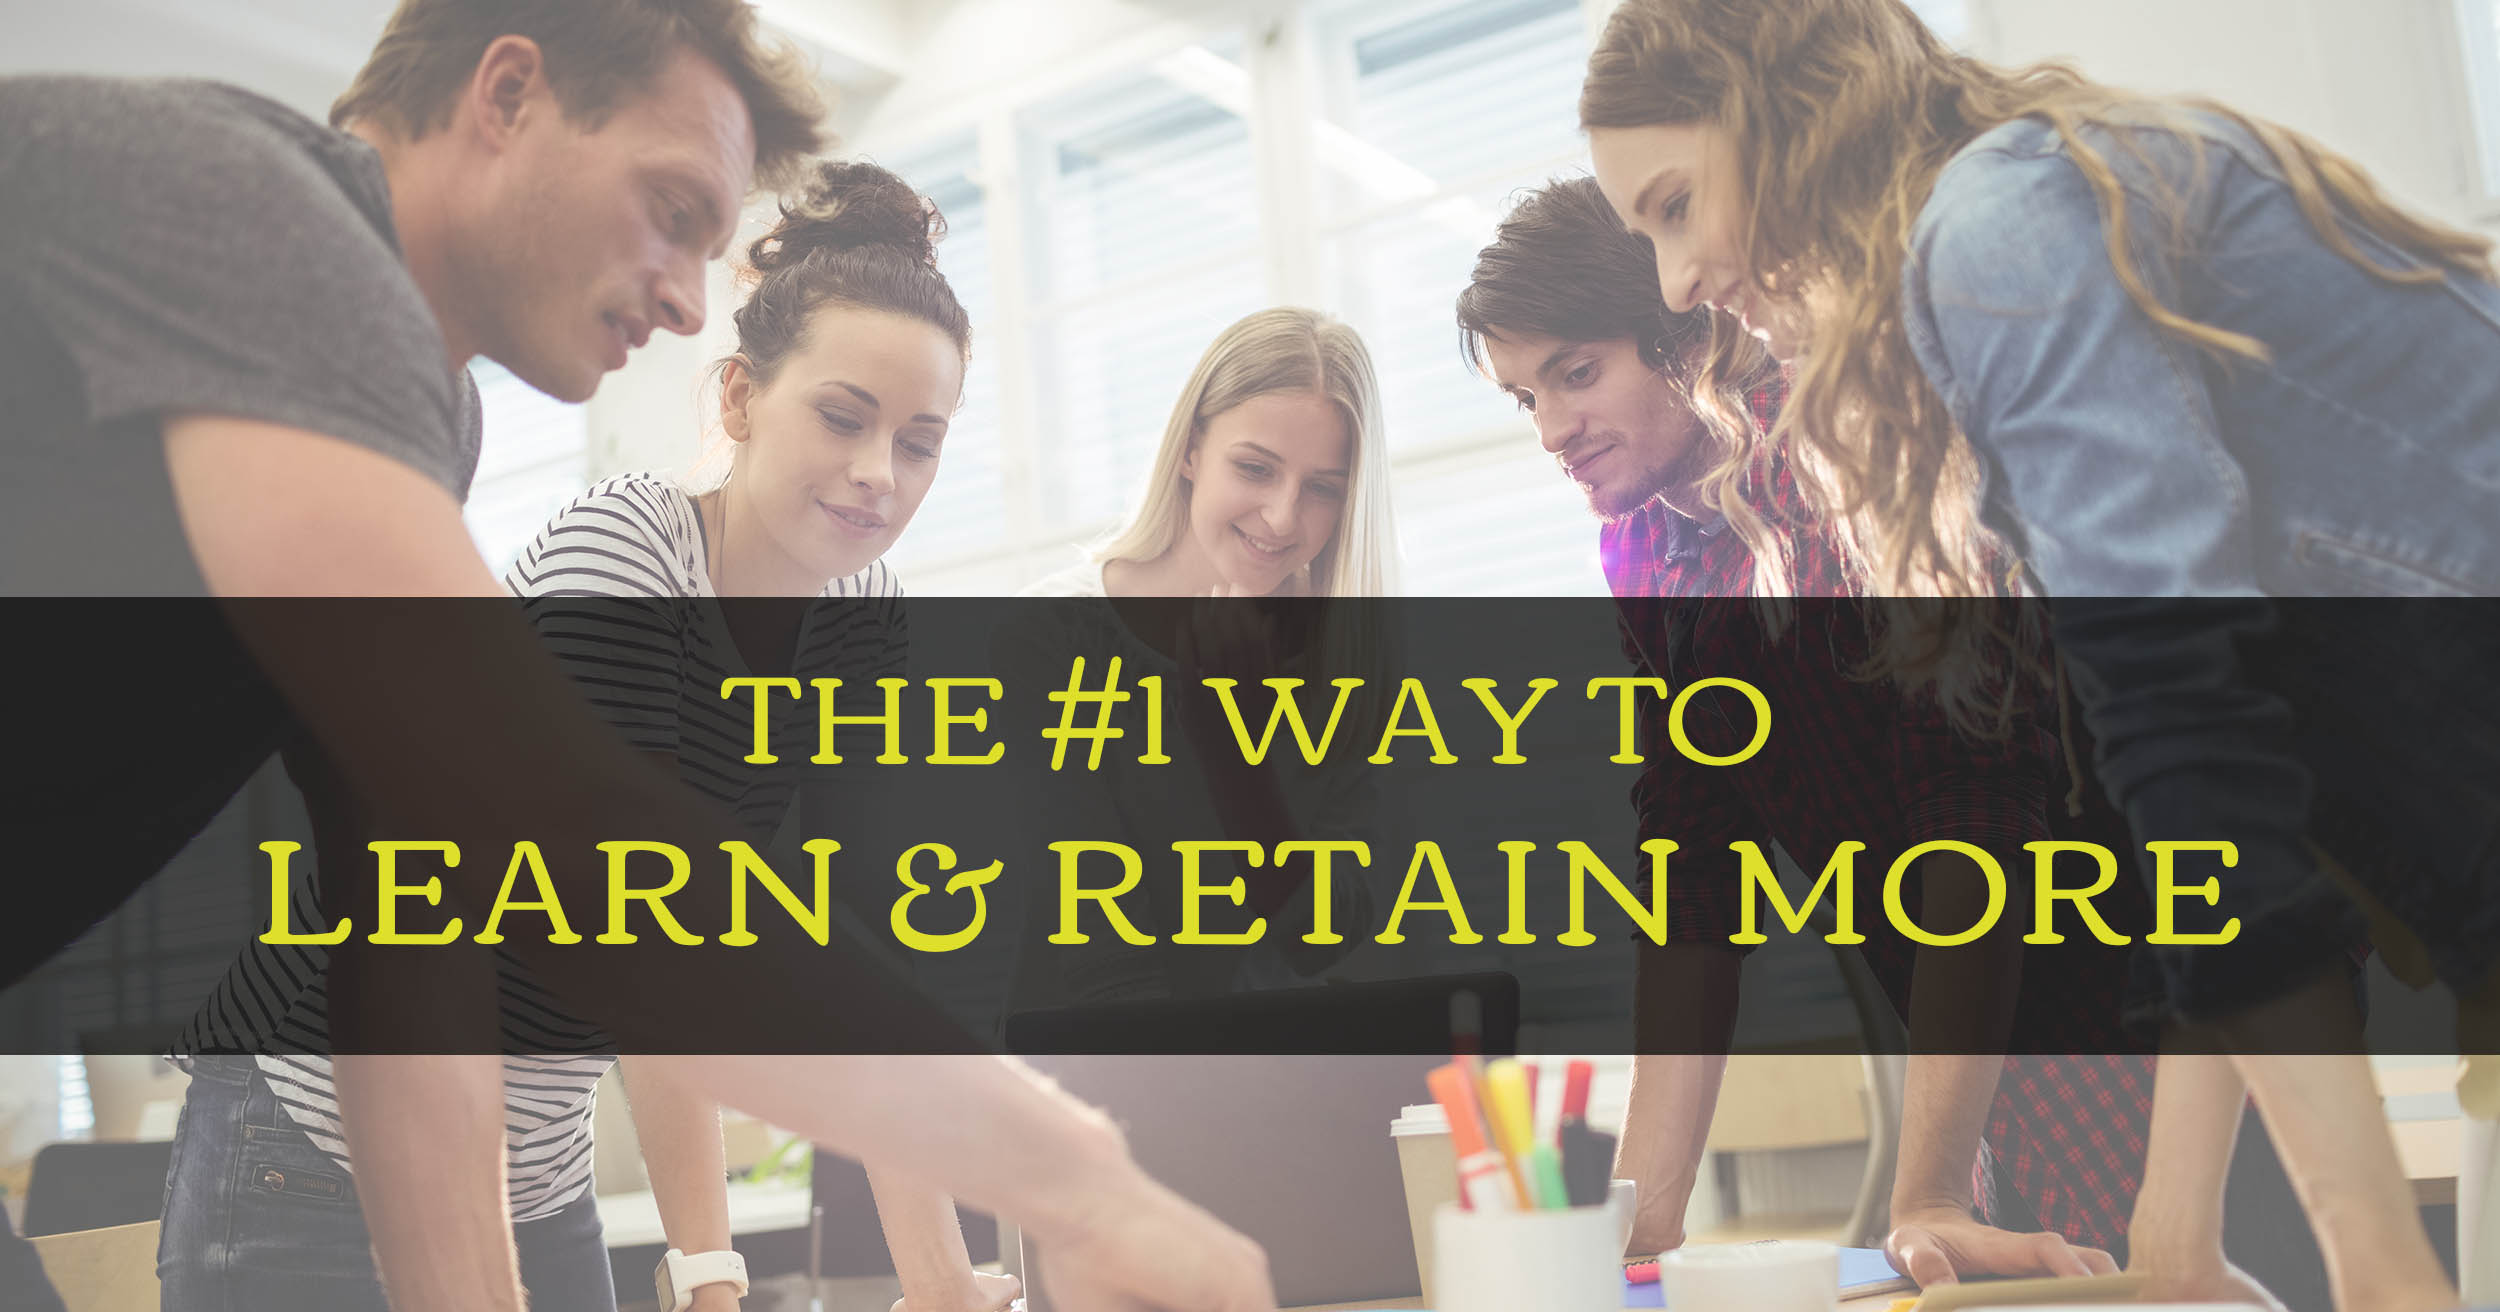 The #1 Way to Learn & Retain More